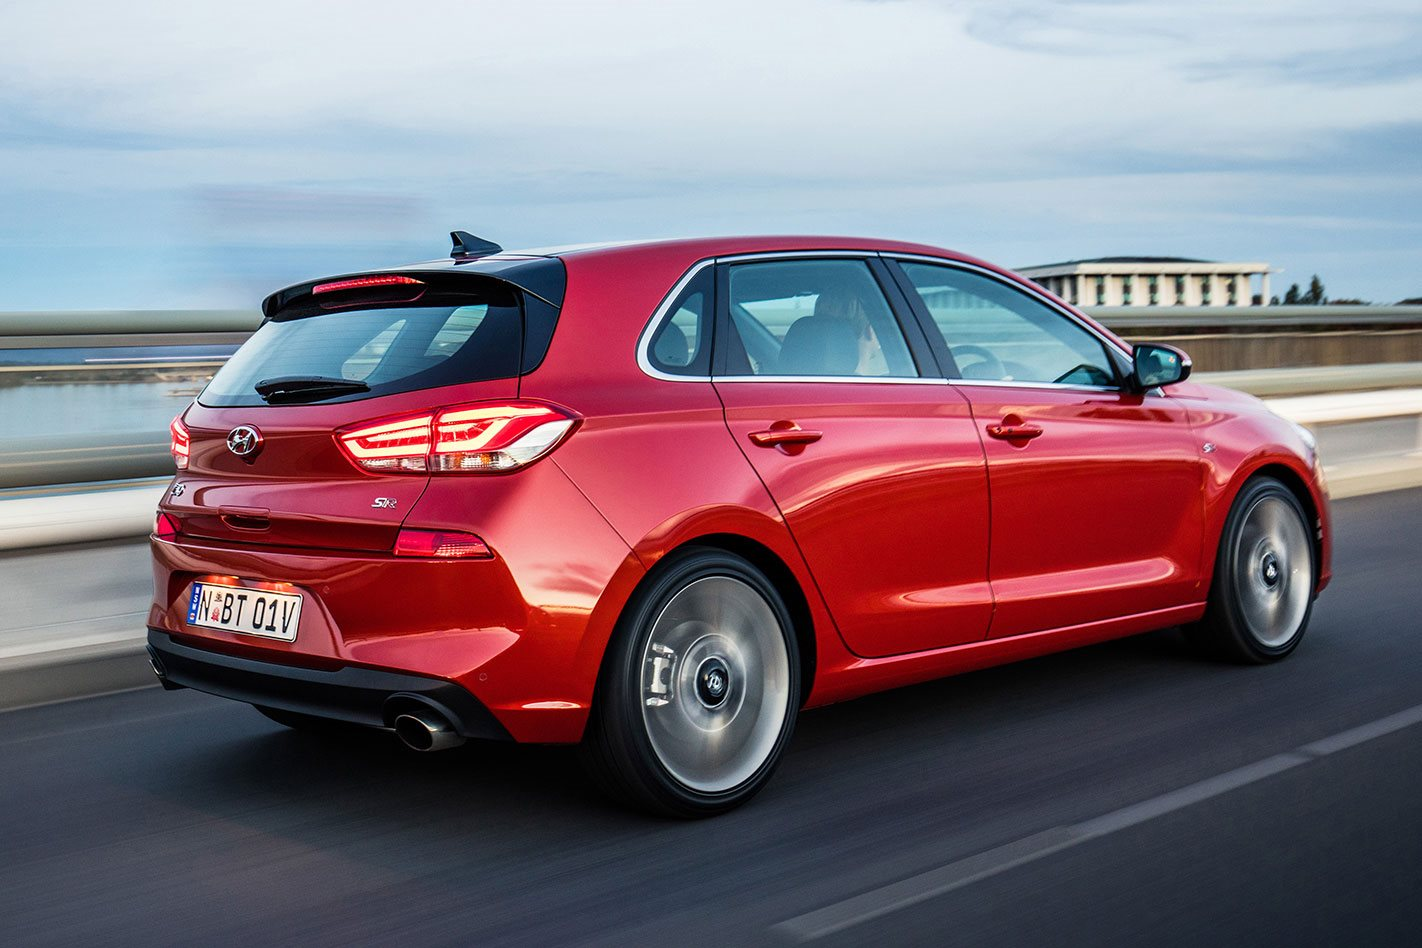 Hyundai i30 2018 Range Review | Price, Features & Specs